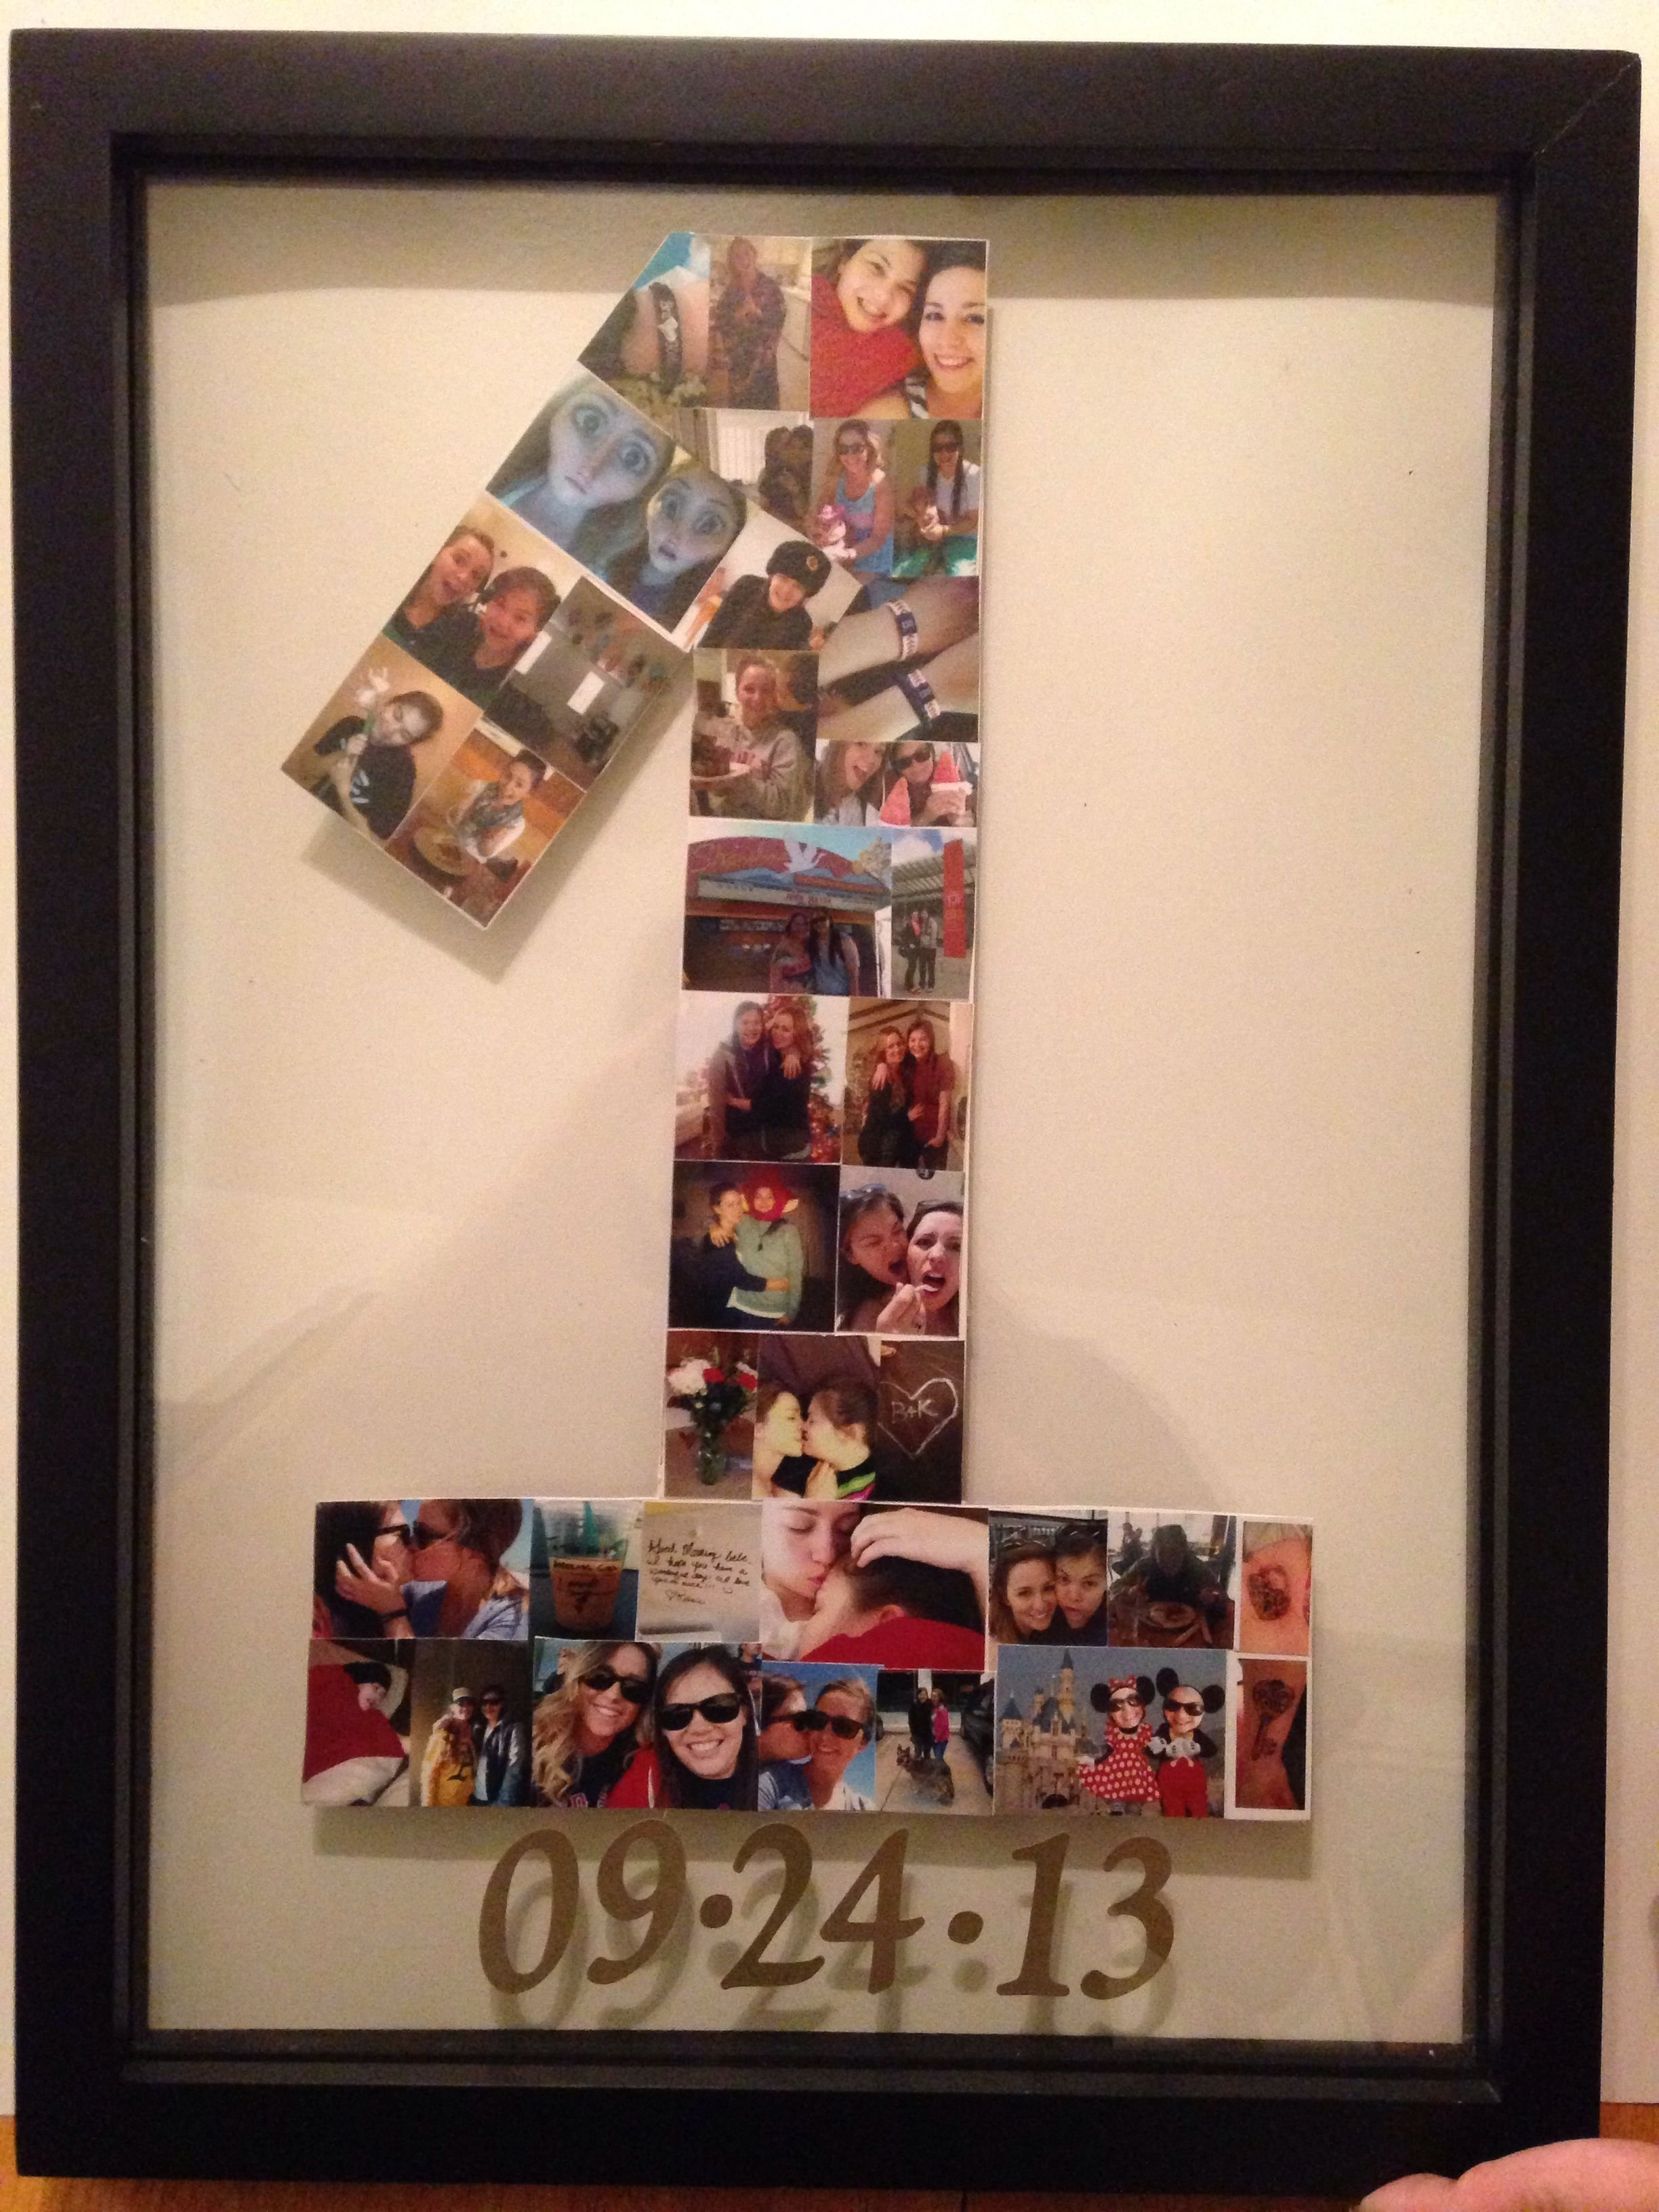 10 Famous 1 Year Anniversary Ideas For Girlfriend my first pinterest project my wonderful mom helped me anniversary 2 2020